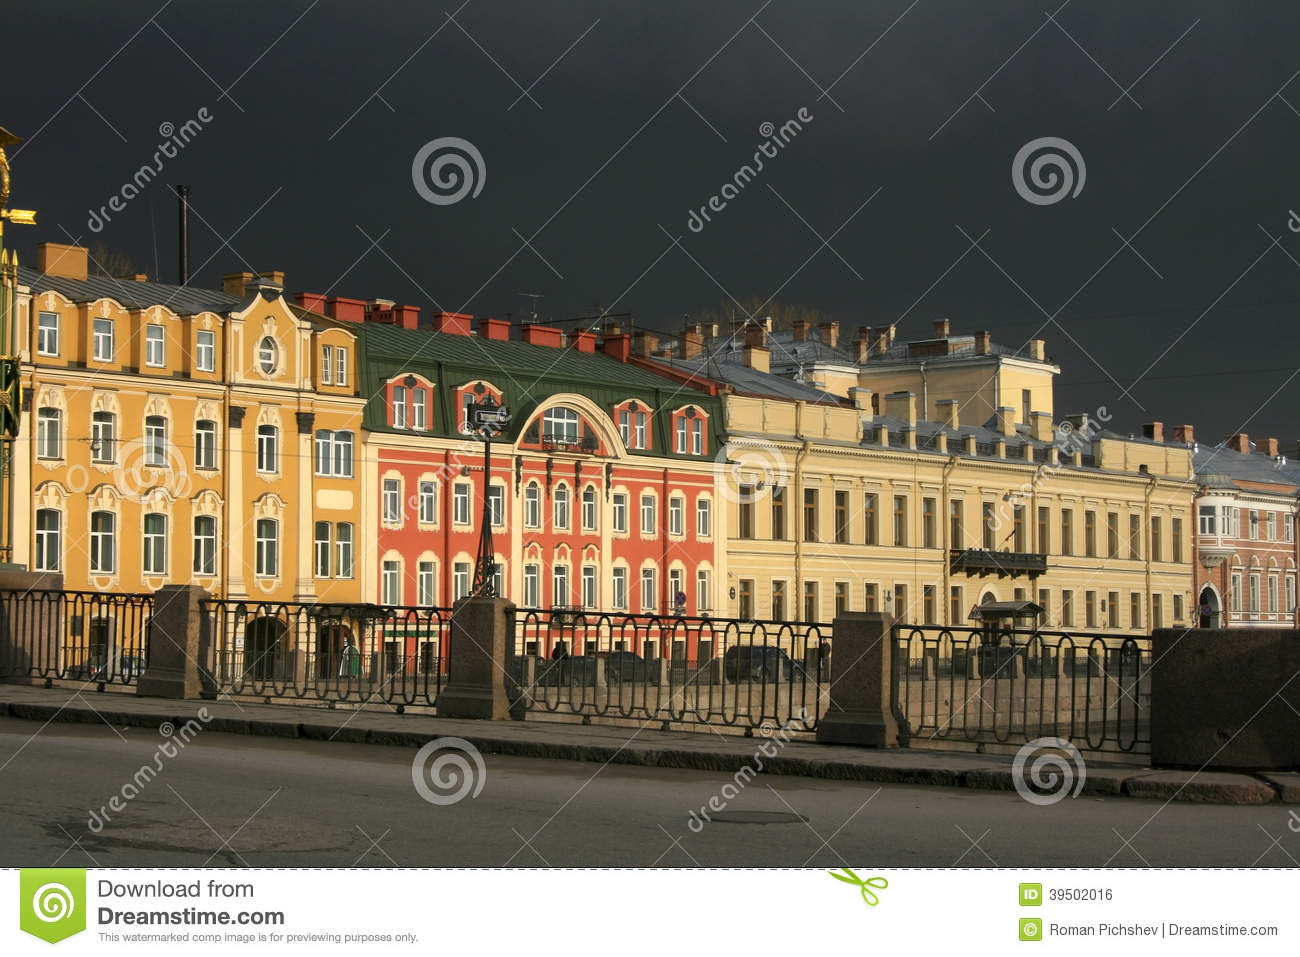 Houses of Petersburg